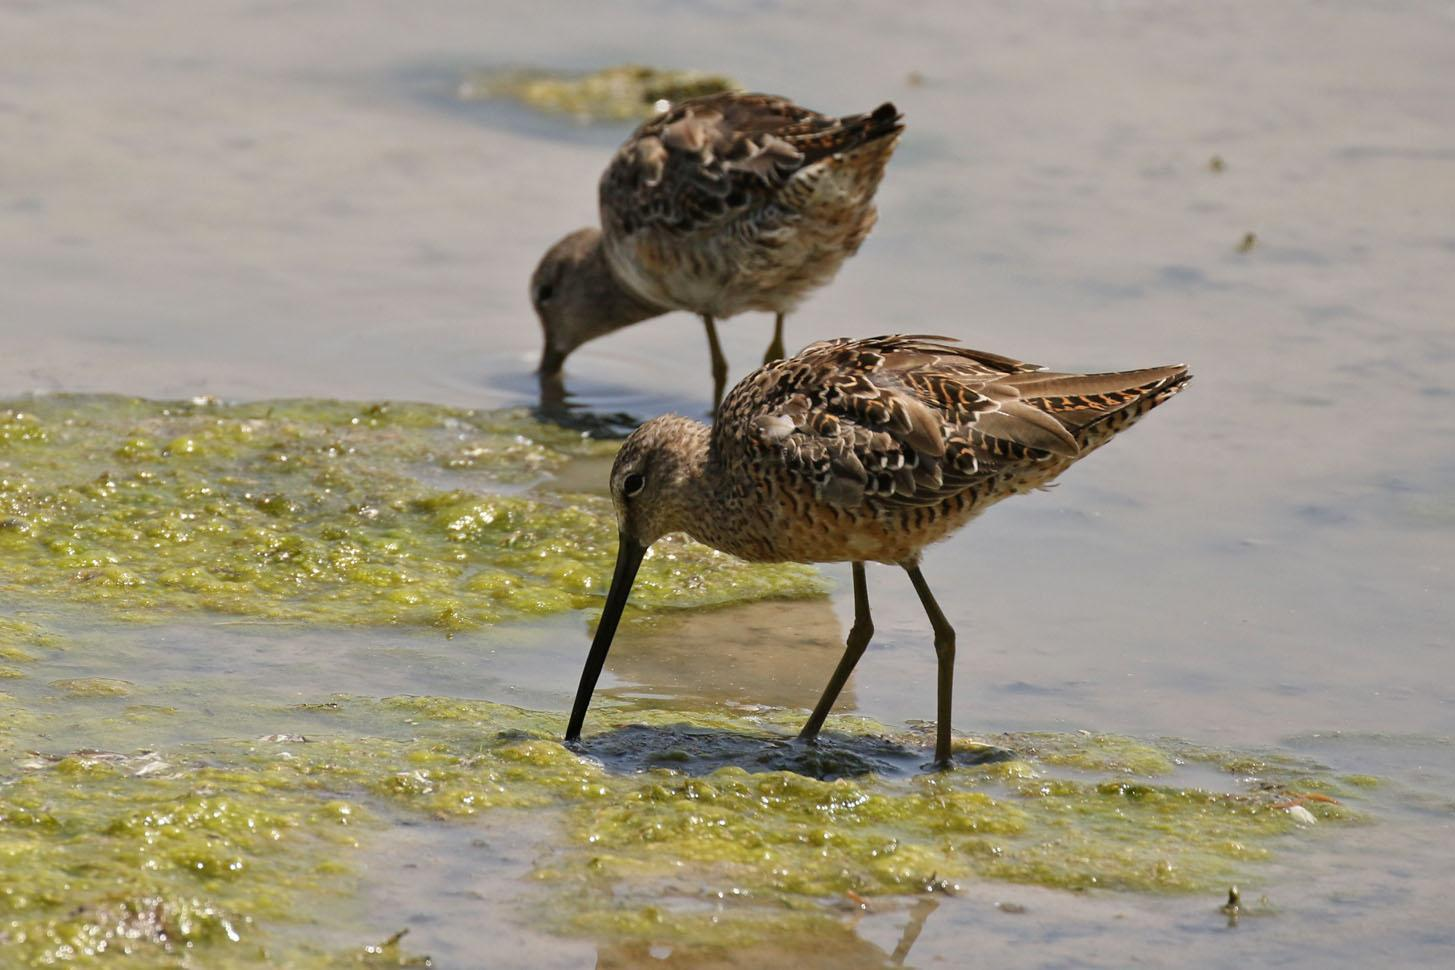 Long-billed Dowitcher Photo by Kristy Baker